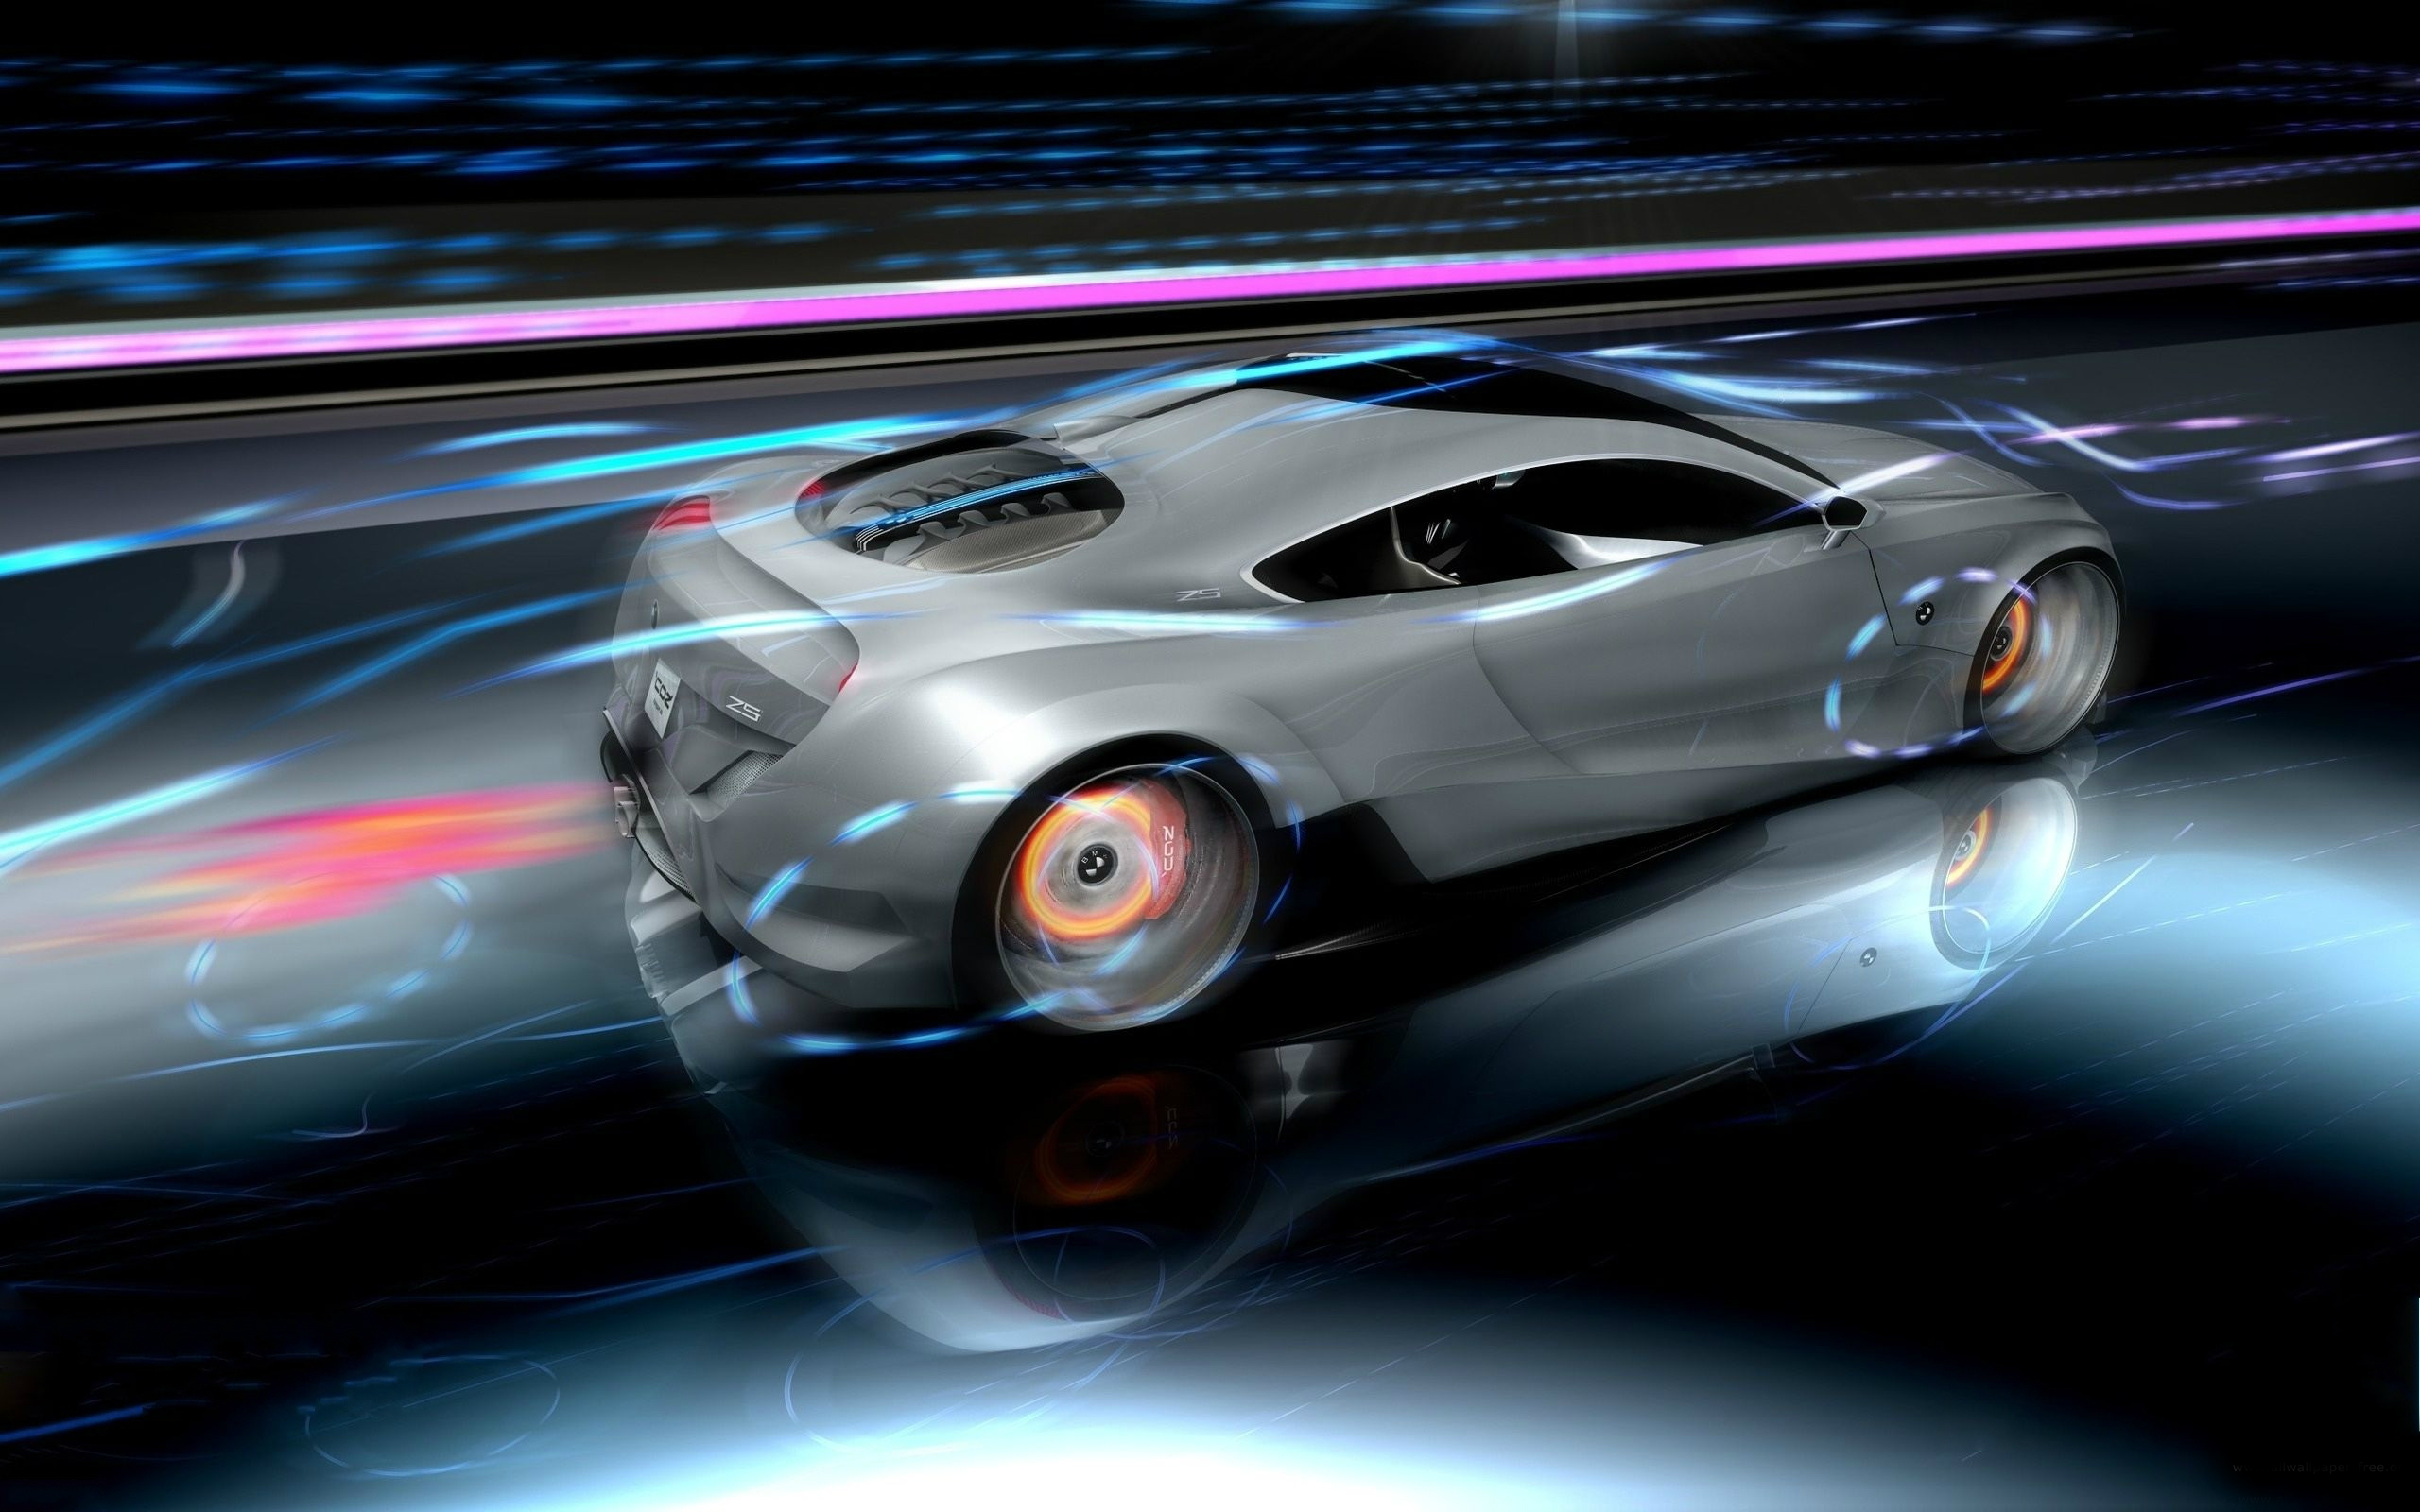 Fast And Furious 7 Cars Wallpapers Wallpaper Desktop Hd